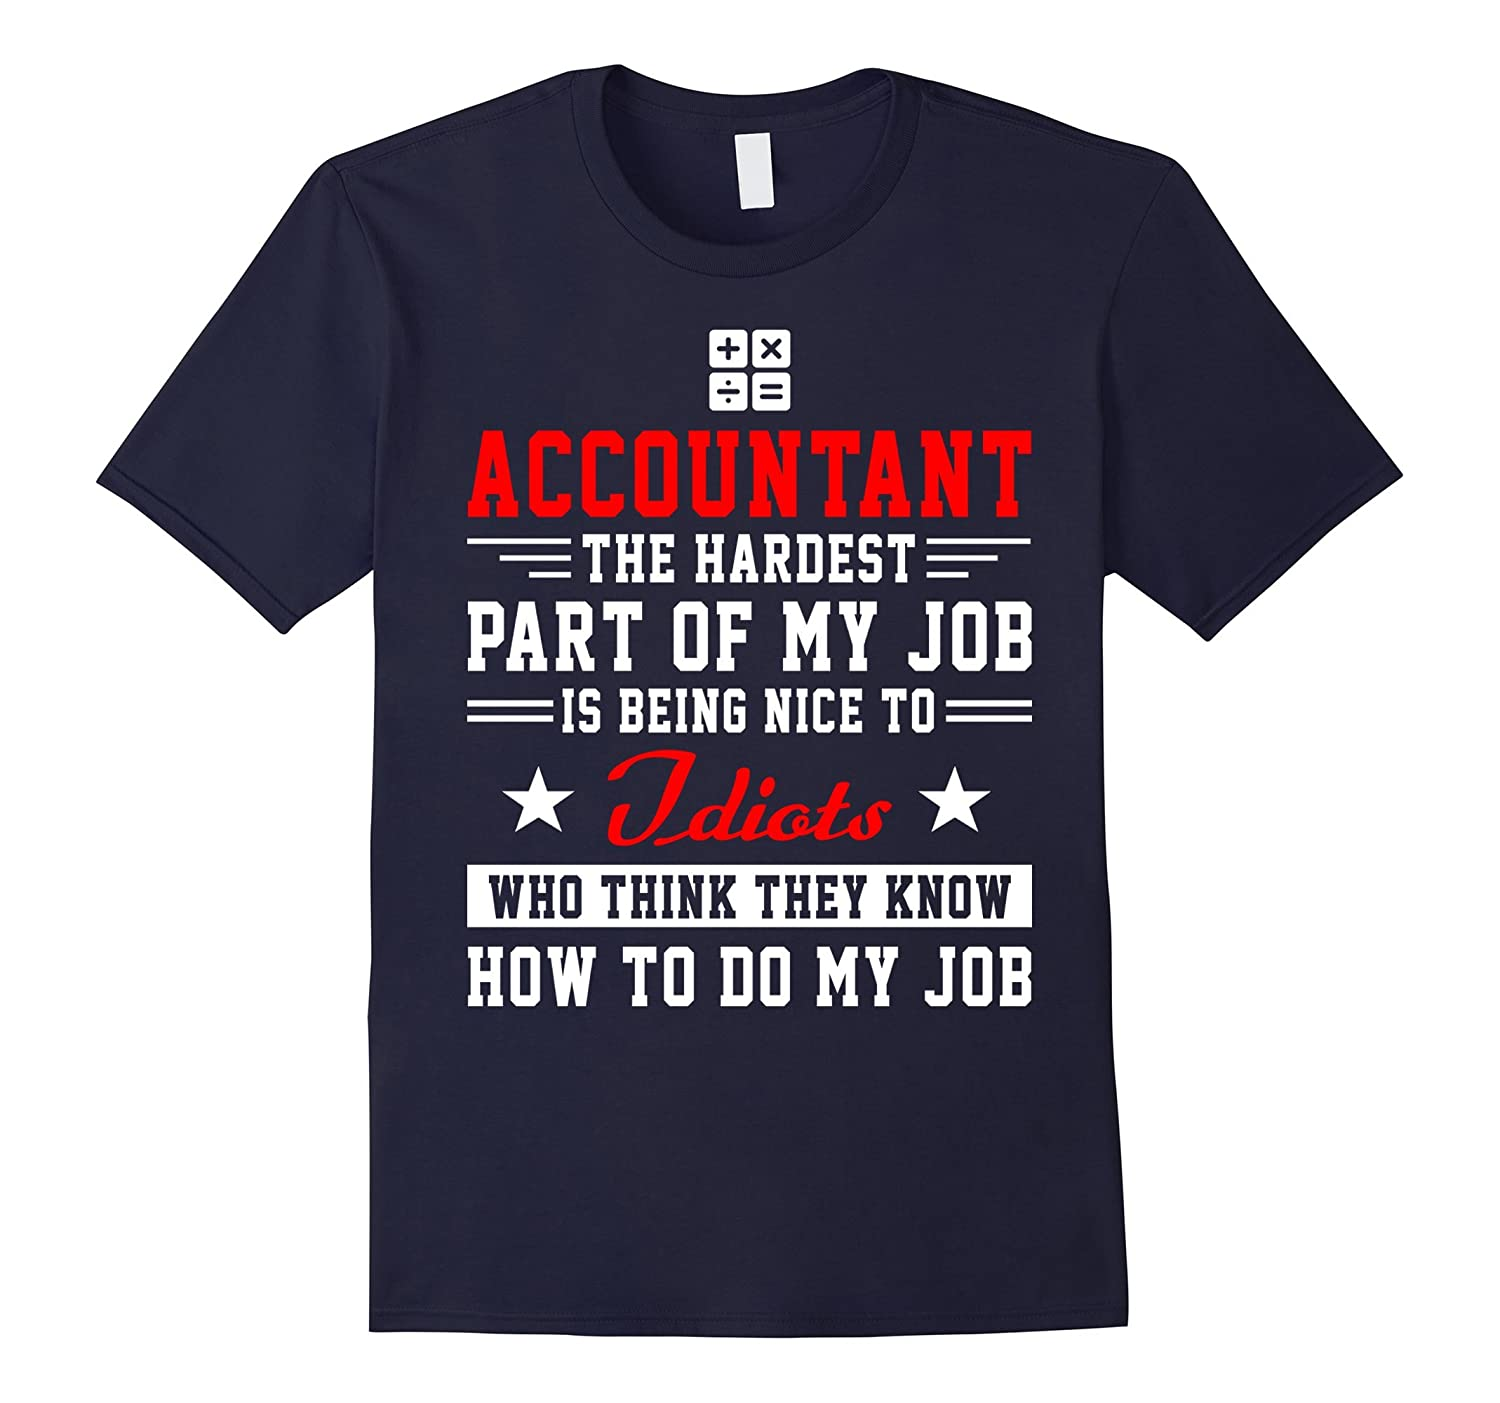 Accountant Shirt - Hardest of My Job is Being Nice to People-TJ